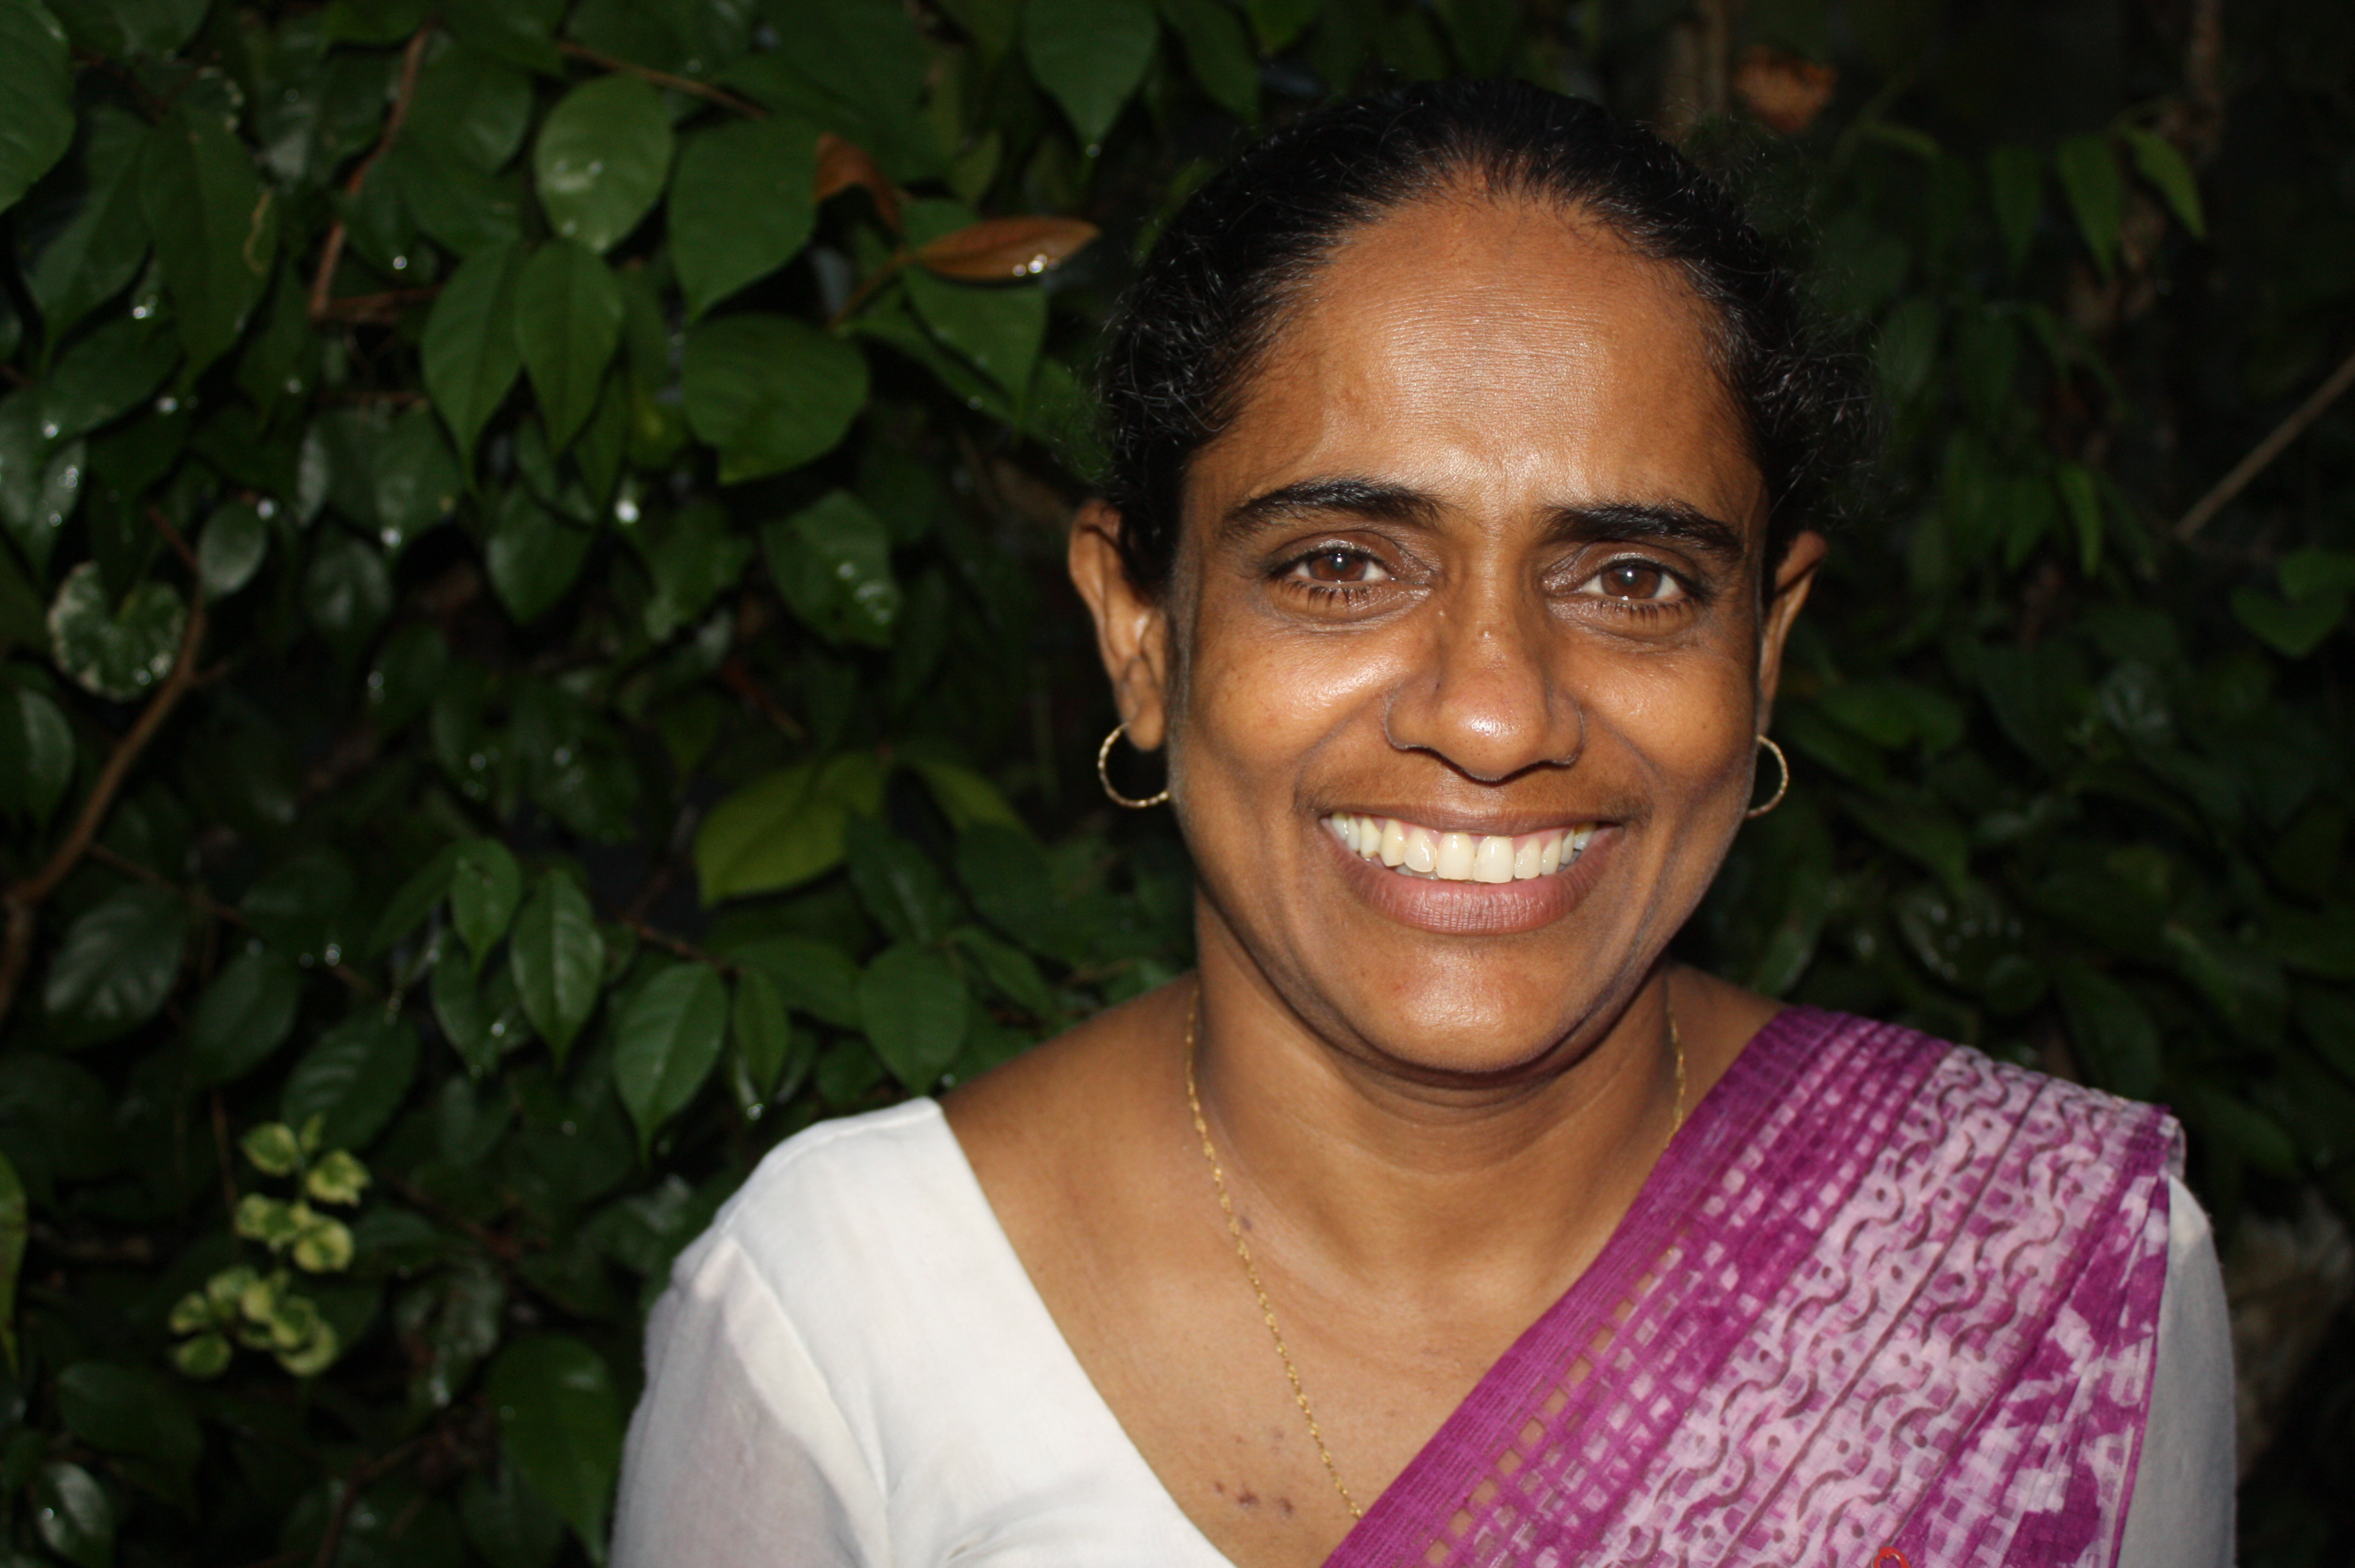 Princey Mangalika is director of the Positive Women's Network in Sri Lanka, an NGO working to assist women and families living with HIV